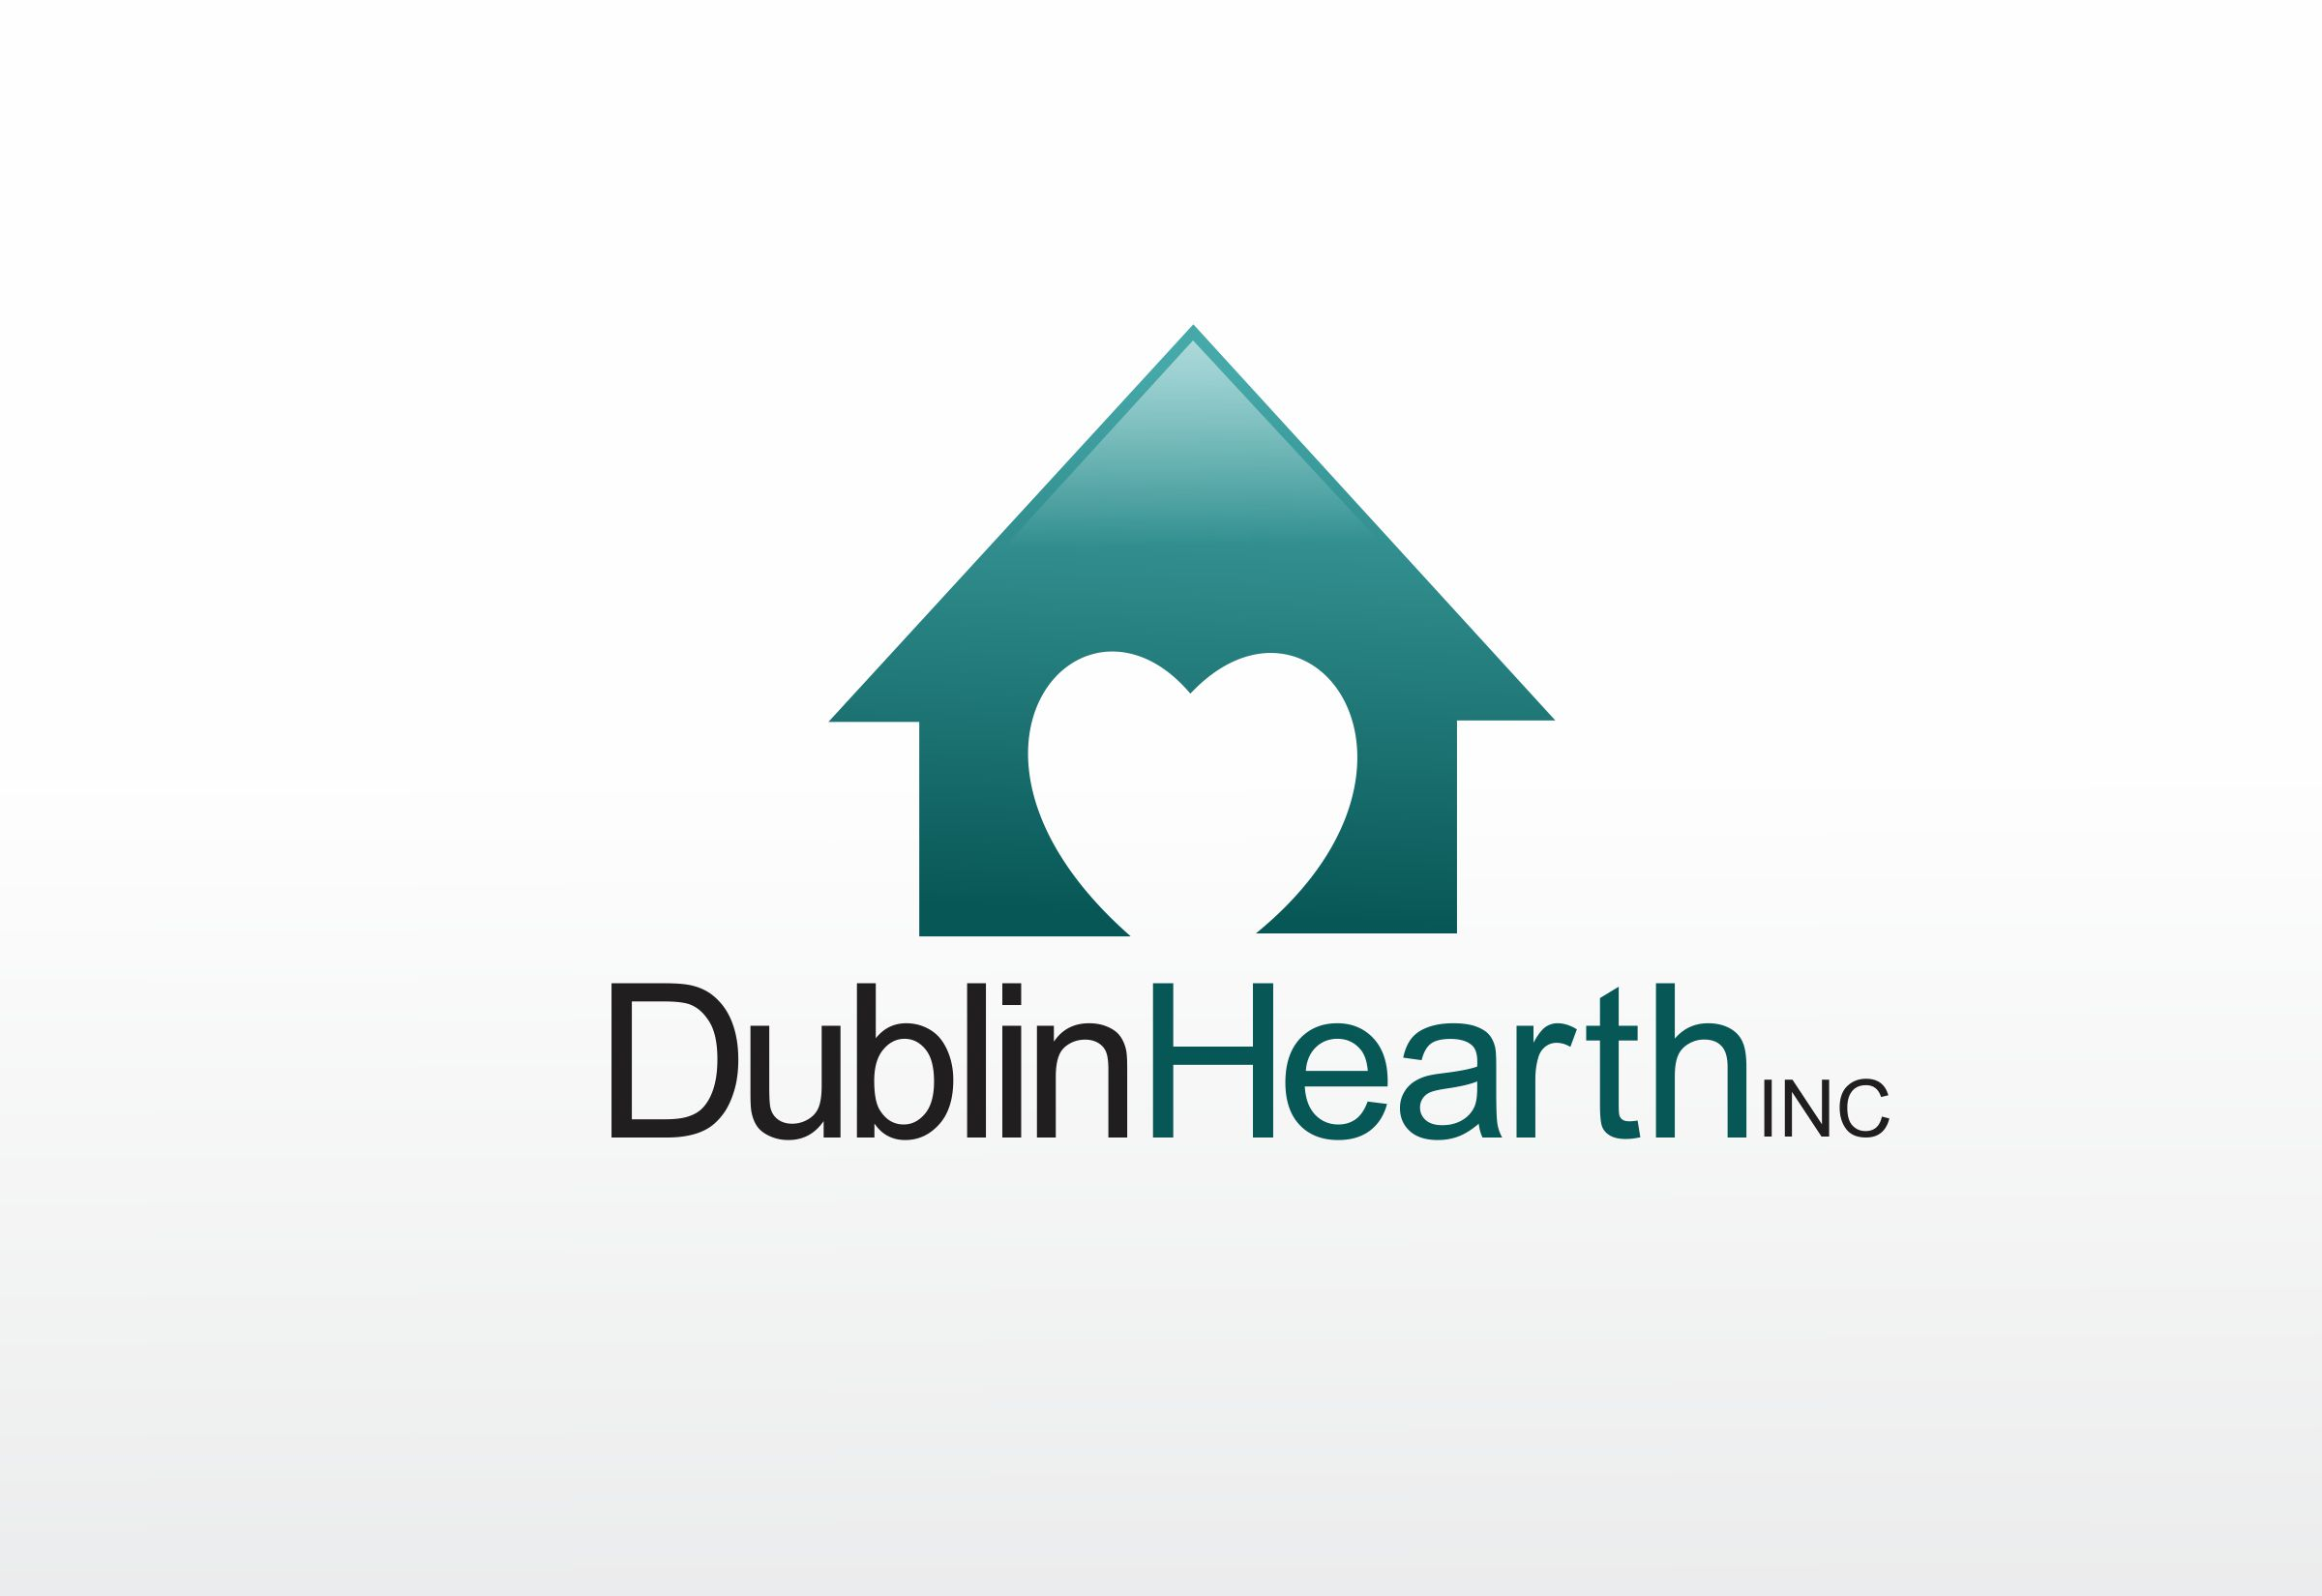 Logo Design by Web Sourcing - Entry No. 40 in the Logo Design Contest clean professional  Logo Design for Dublin Hearth Inc. with a splash of fun with letter head.